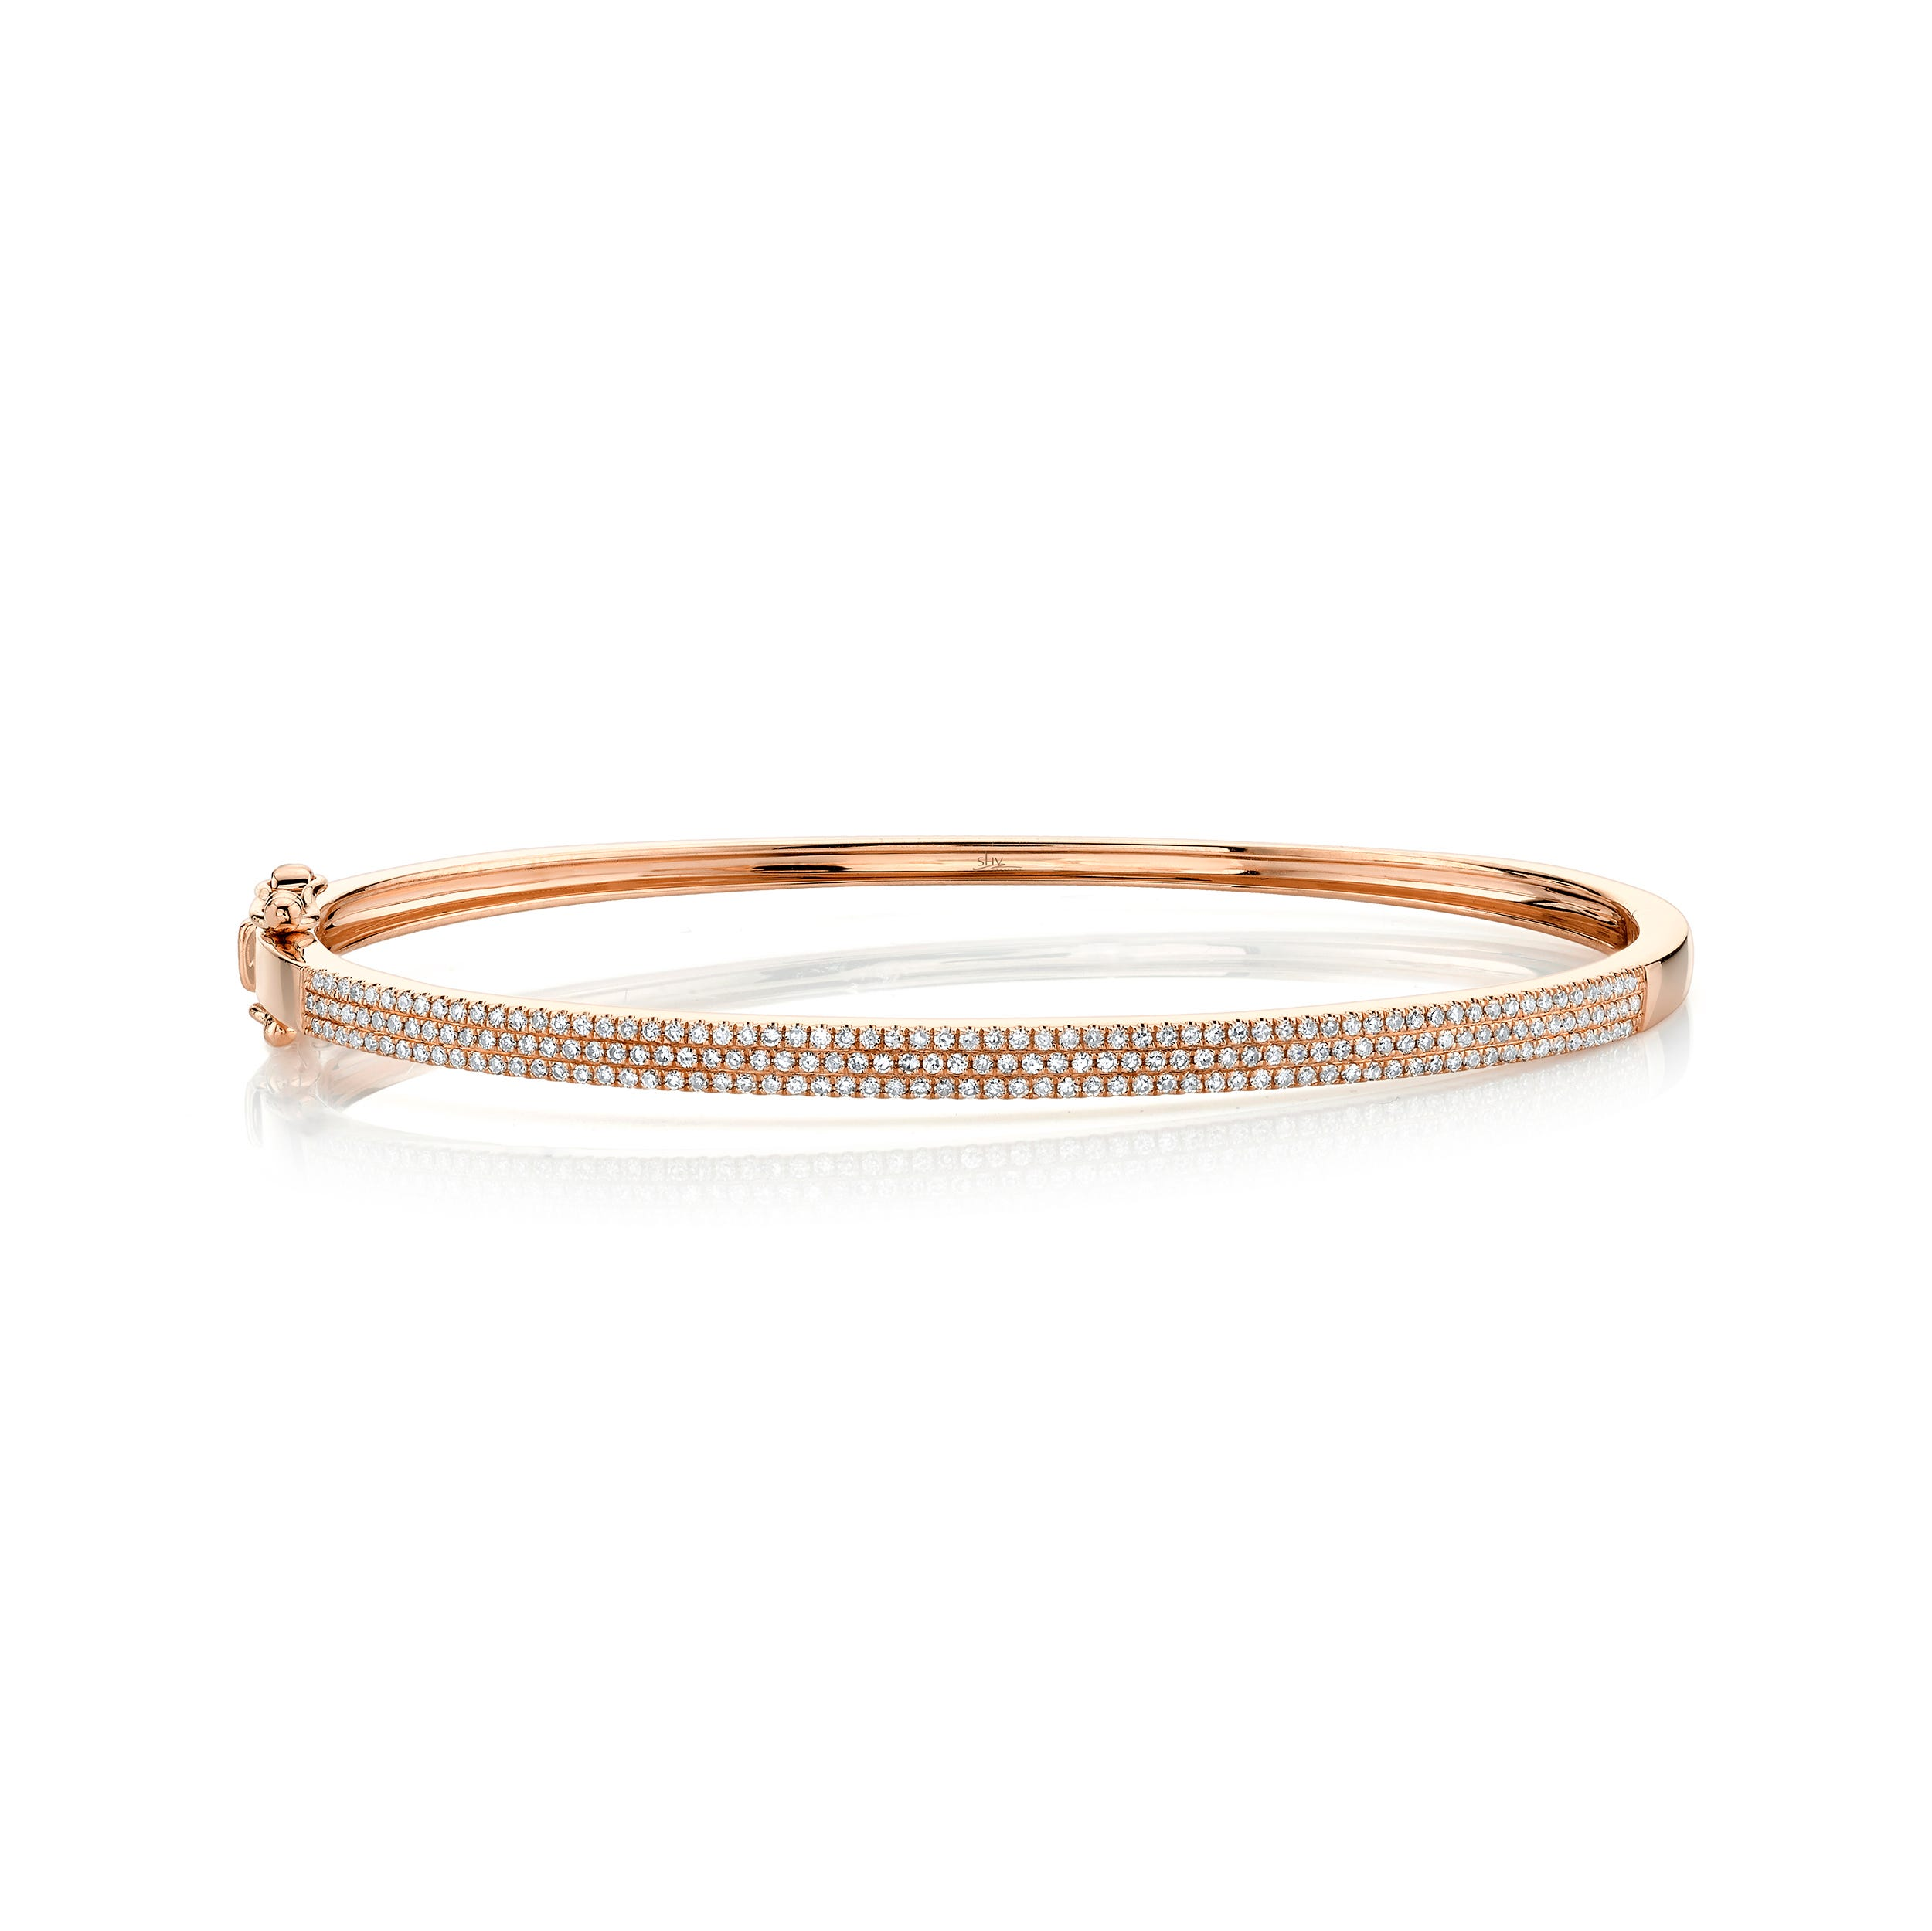 Shy Creation  Pave Diamond ½ctw. Bangle Bracelet in 14k Rose Gold SC55002257ZS